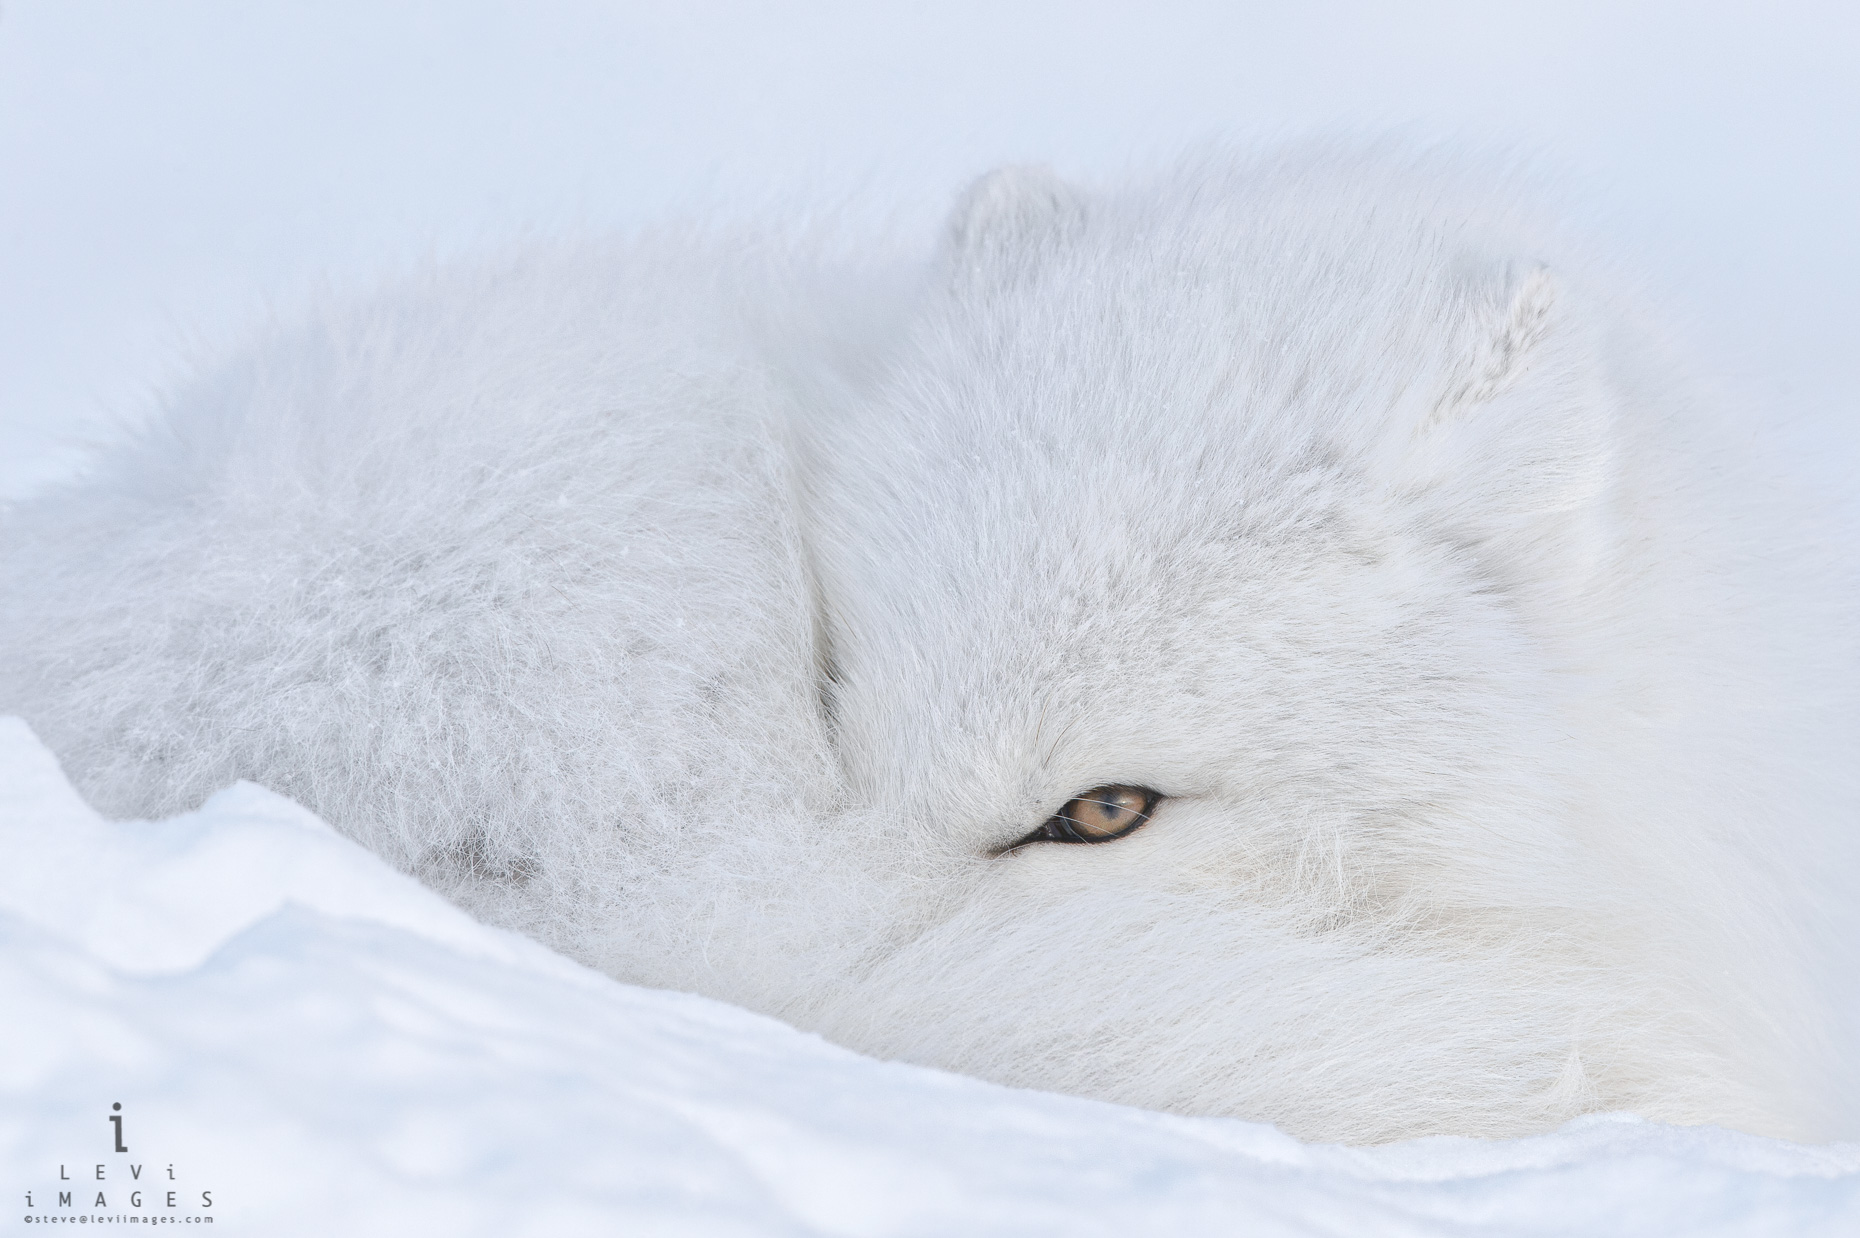 Arctic Fox (Vulpes lagopus) curled-up on snow looks at the camera with one eye. Manitoba, Canada